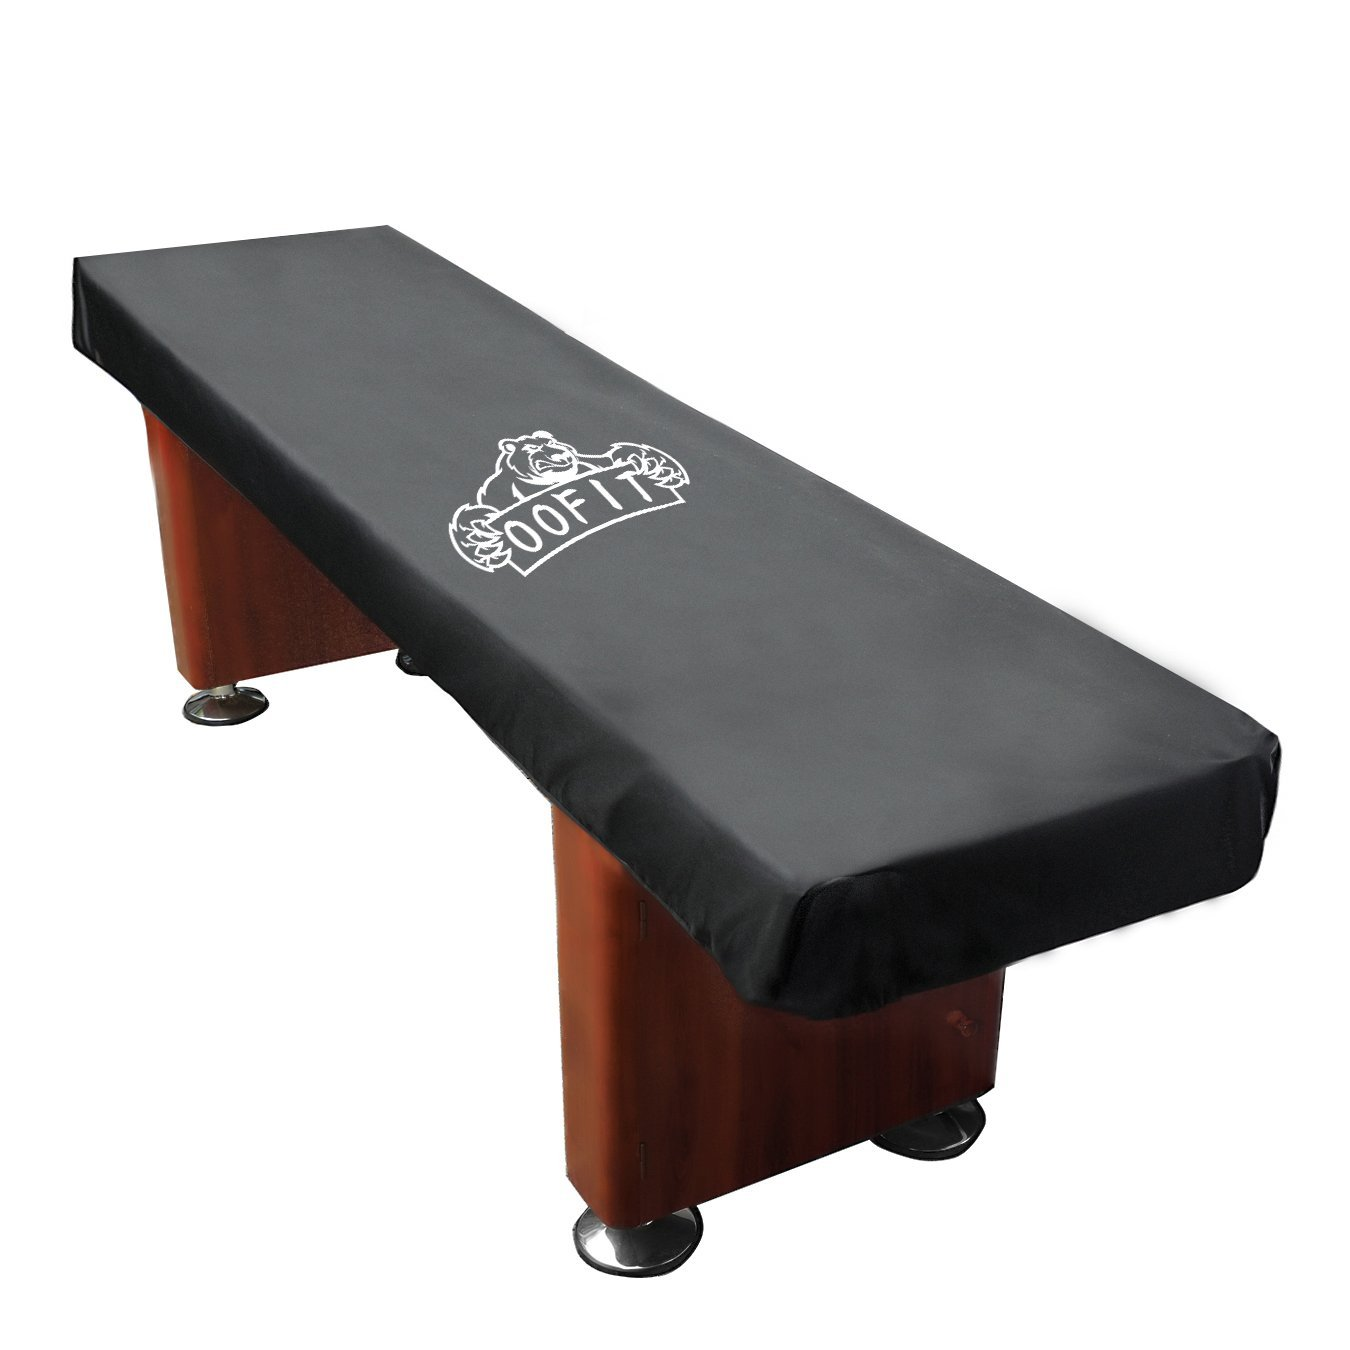 OOFIT 12' Shuffleboard Table Cover with Storage Bag Black by OOFIT